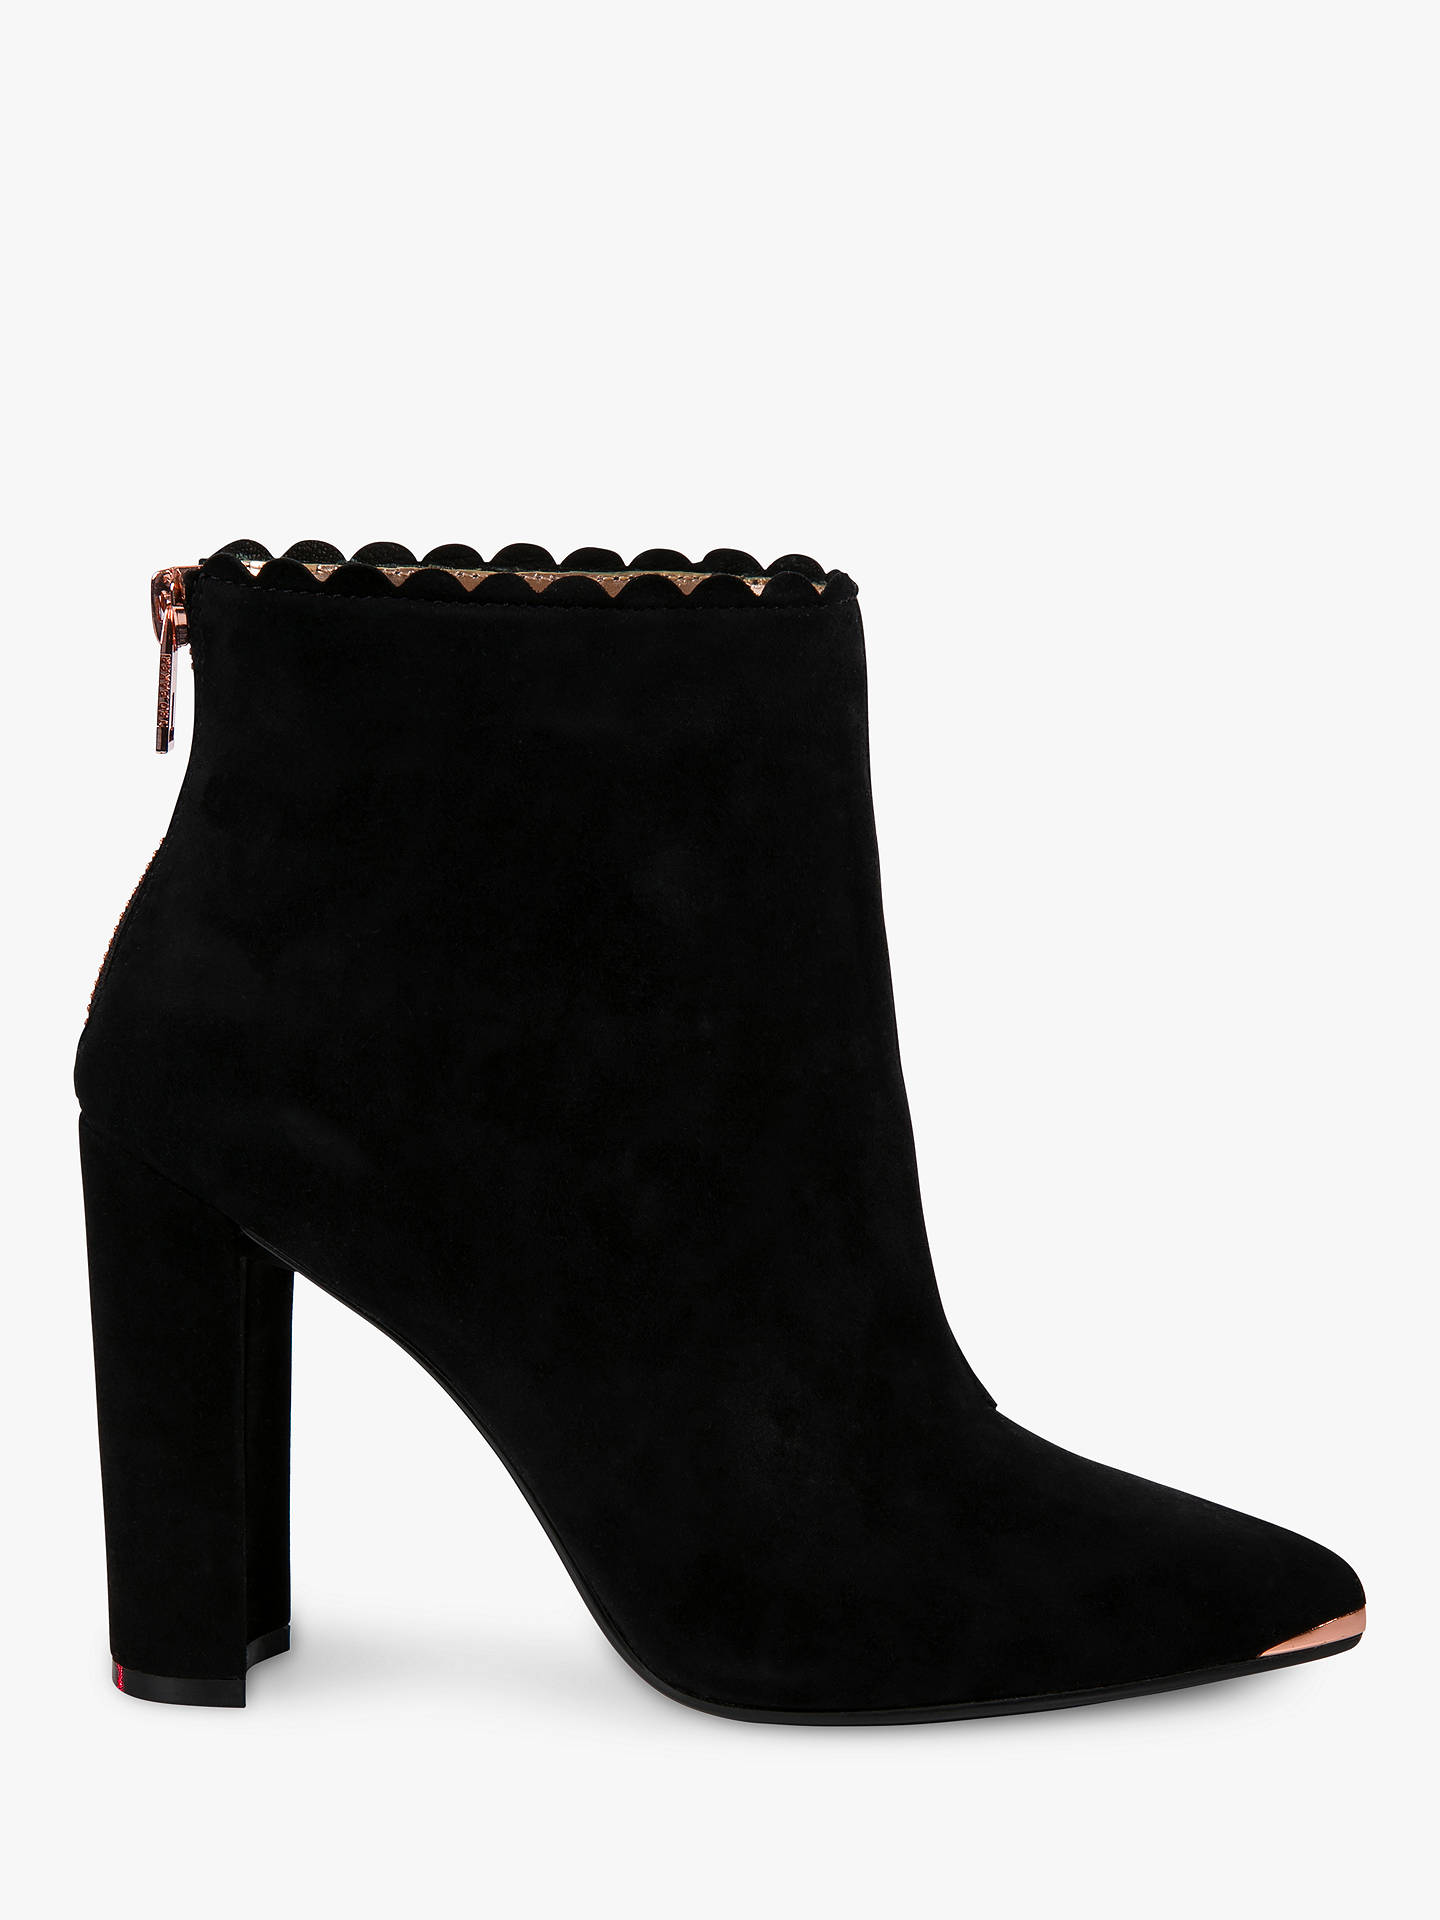 ee9c694a870 Buy Ted Baker Ofelia High Block Heel Ankle Boots